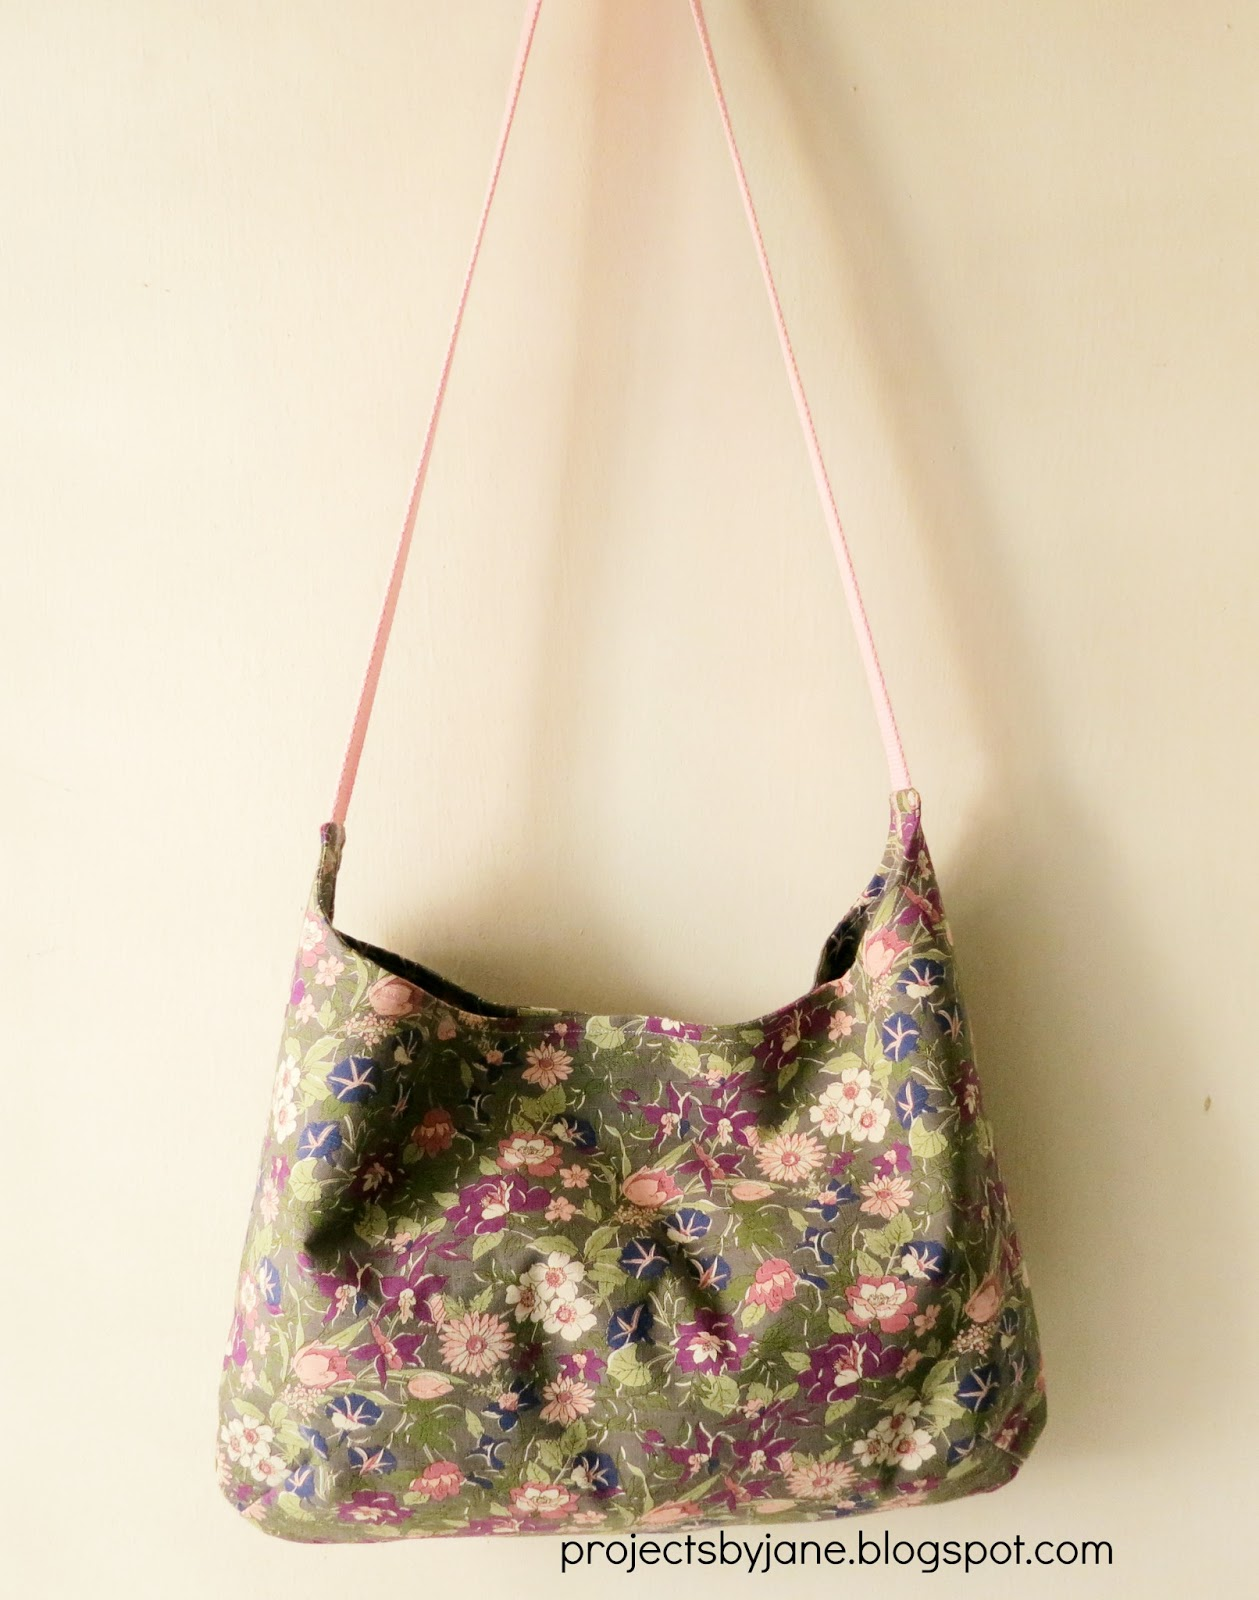 Sling bags and shoulder bags | Projects by Jane